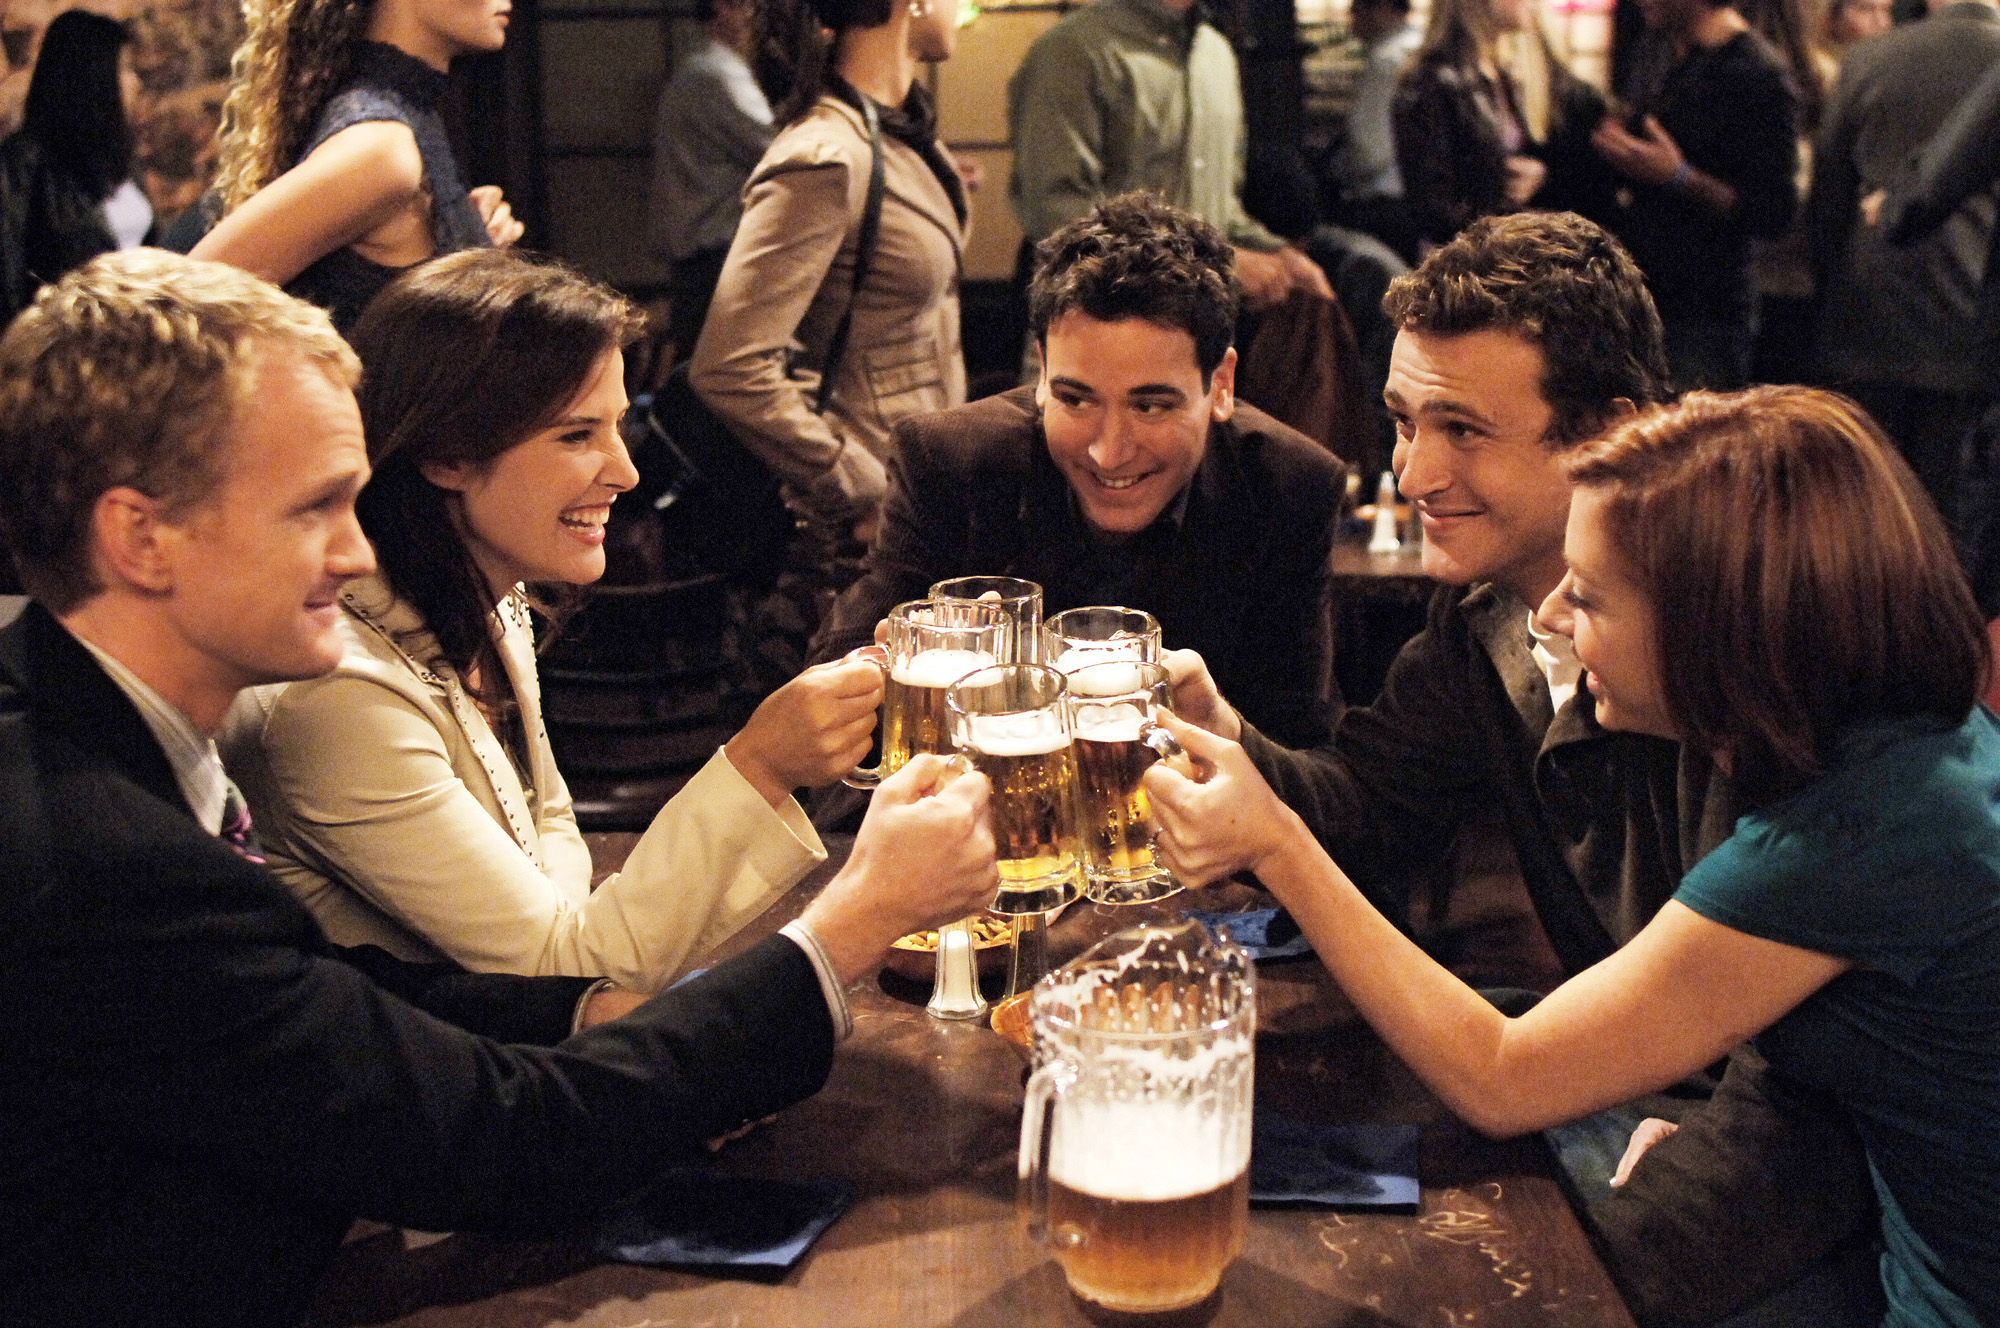 News: How I Met Your Mother Gets 9th Season, Leverage Canceled, Psych Gets Shortened 8th Season